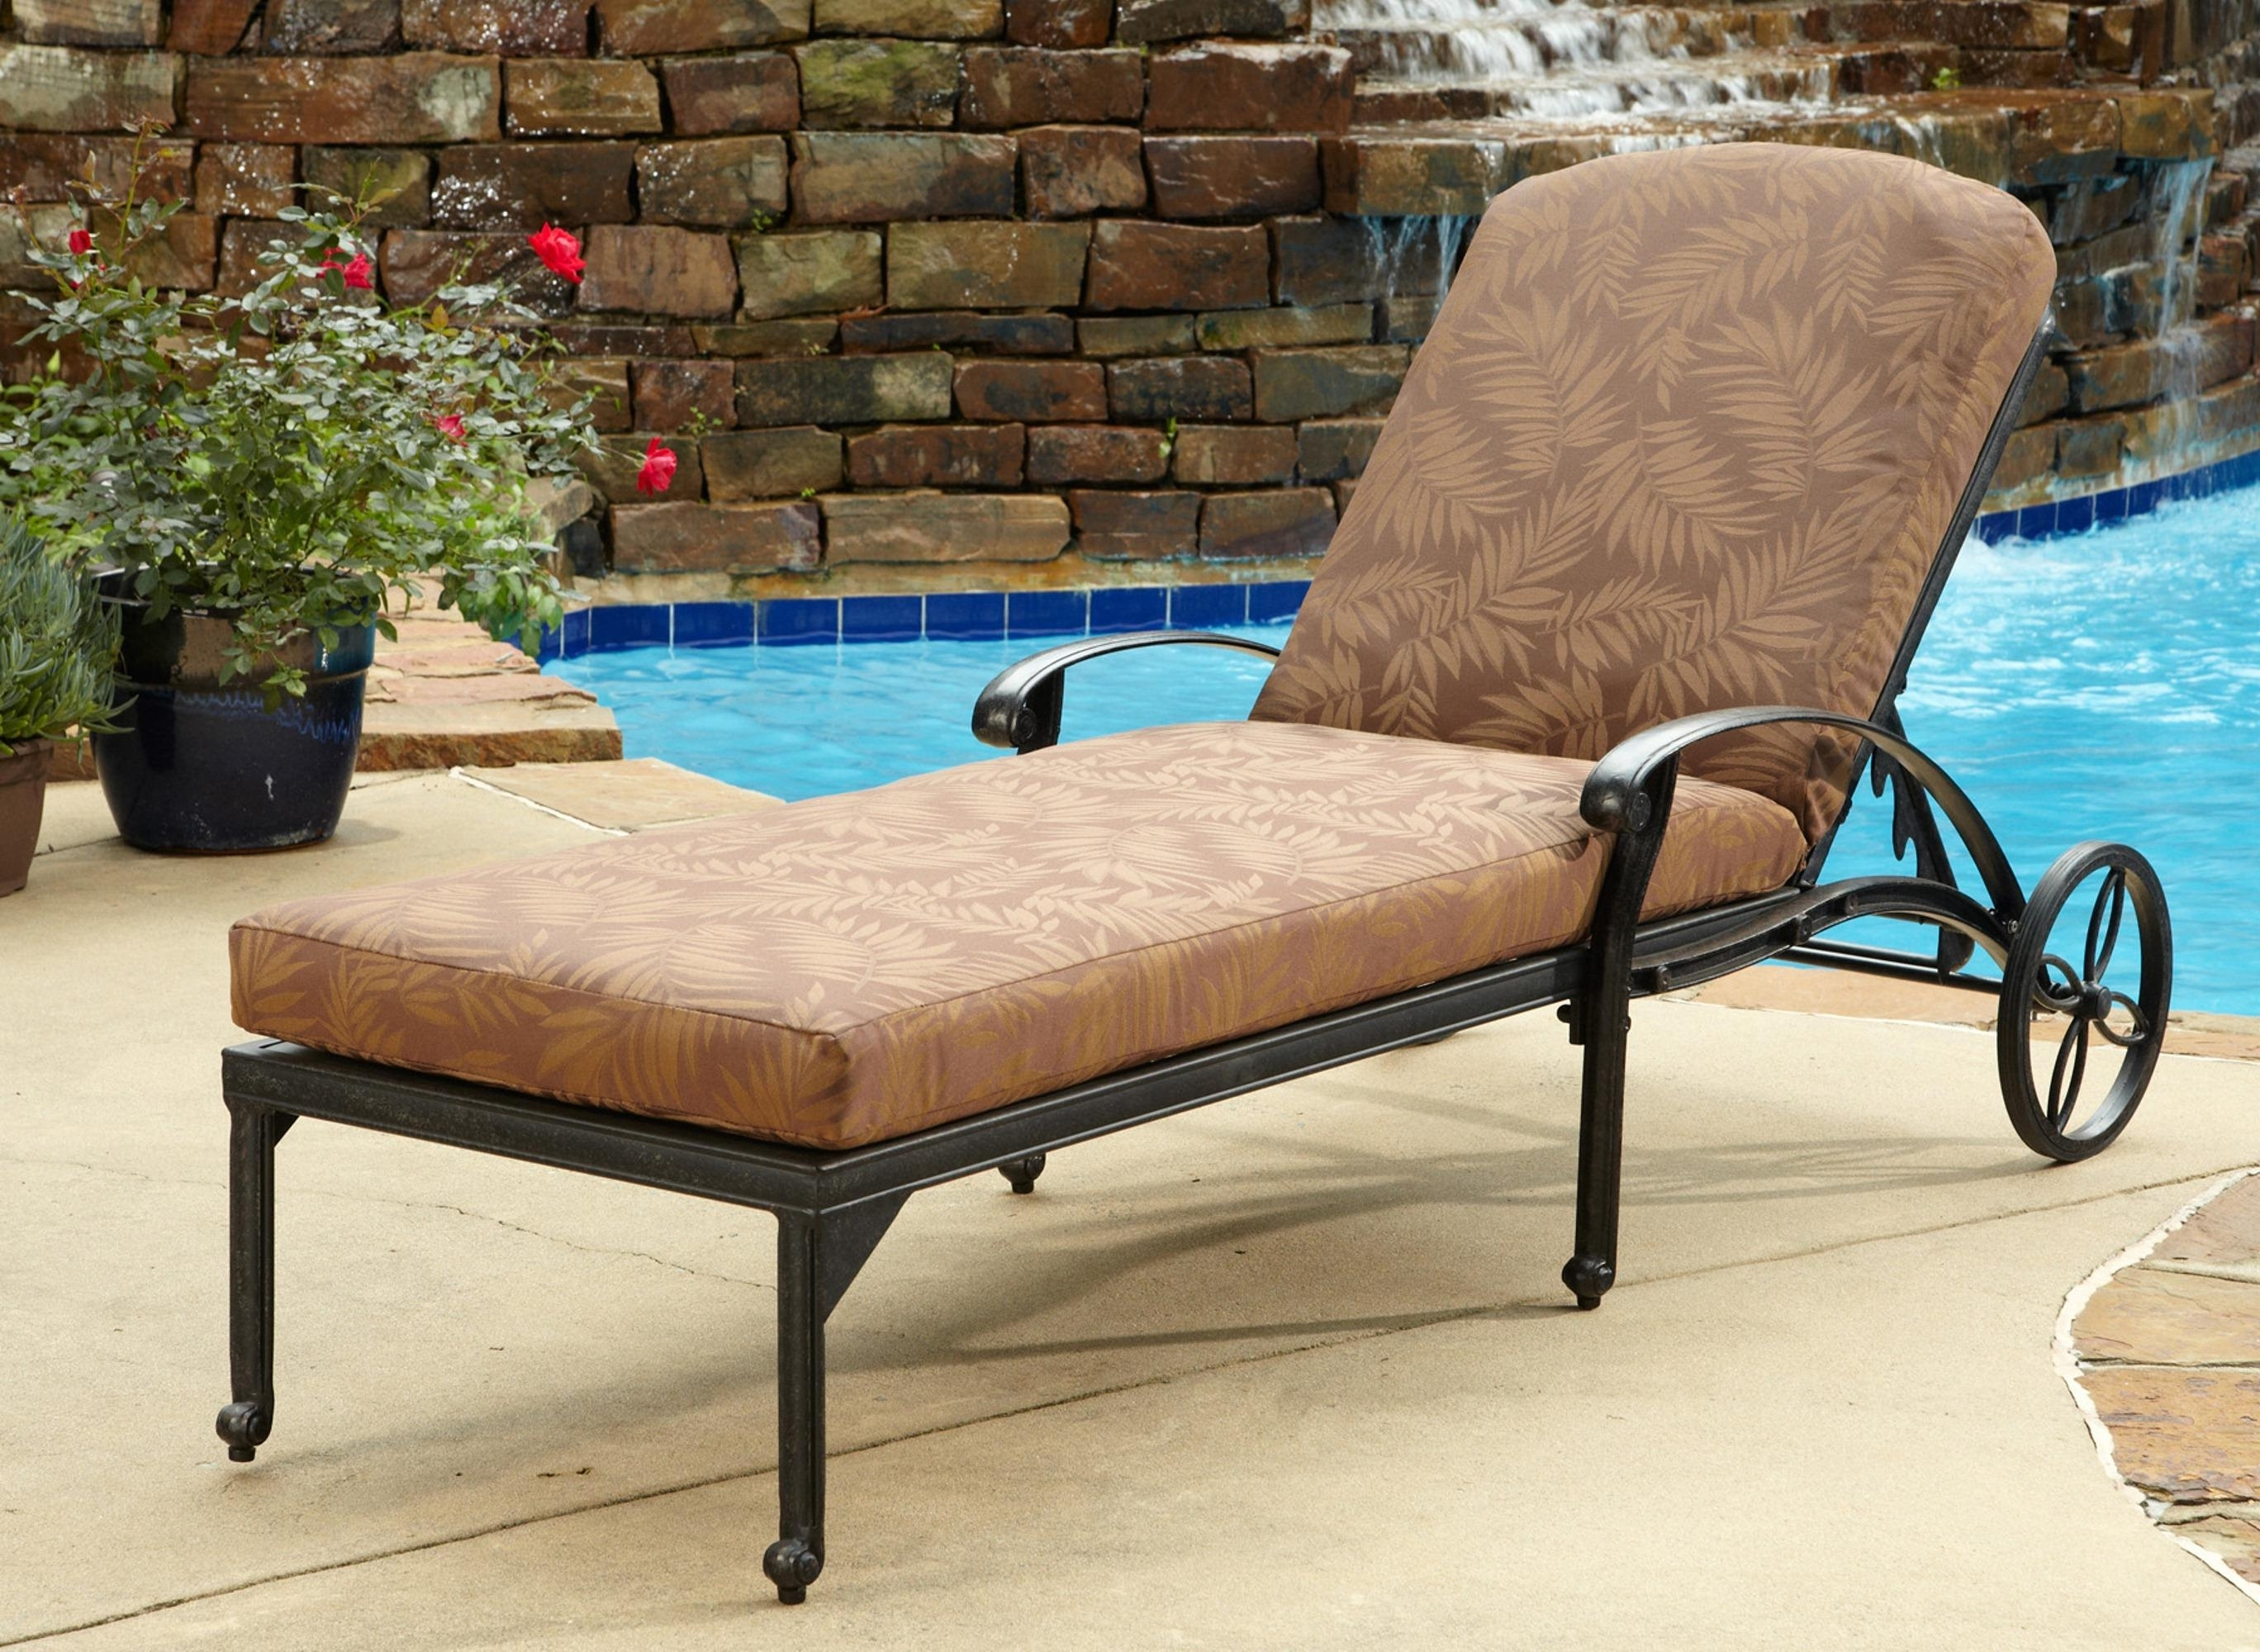 2018 Comfortable Outdoor Chaise Lounge Chairs Intended For Outdoor Chaise Lounge With Ergonomic Seating Settings – Traba Homes (View 11 of 15)